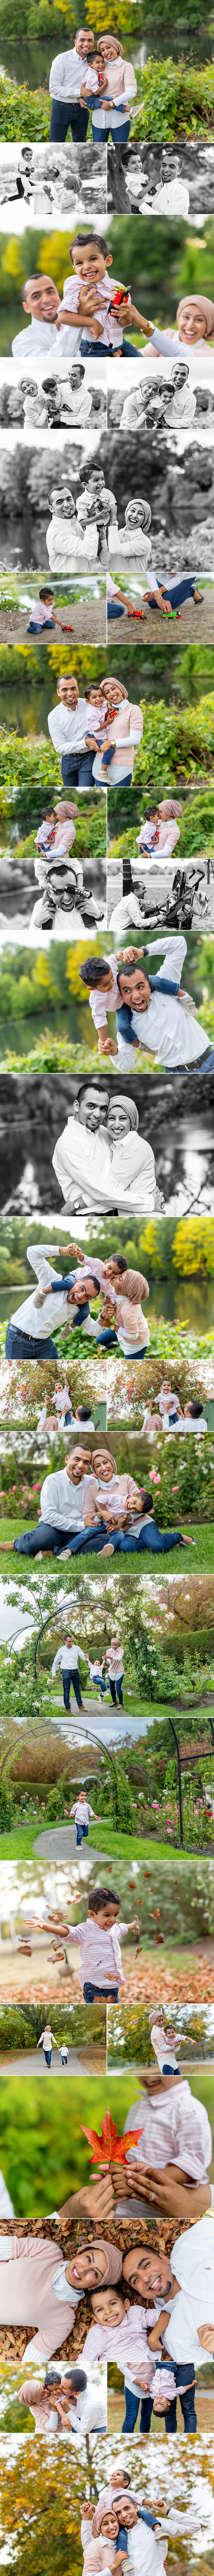 Medford family photographer Kate Lemmon documents a family using natural light in the Back Bay Fens in downtown Boston.